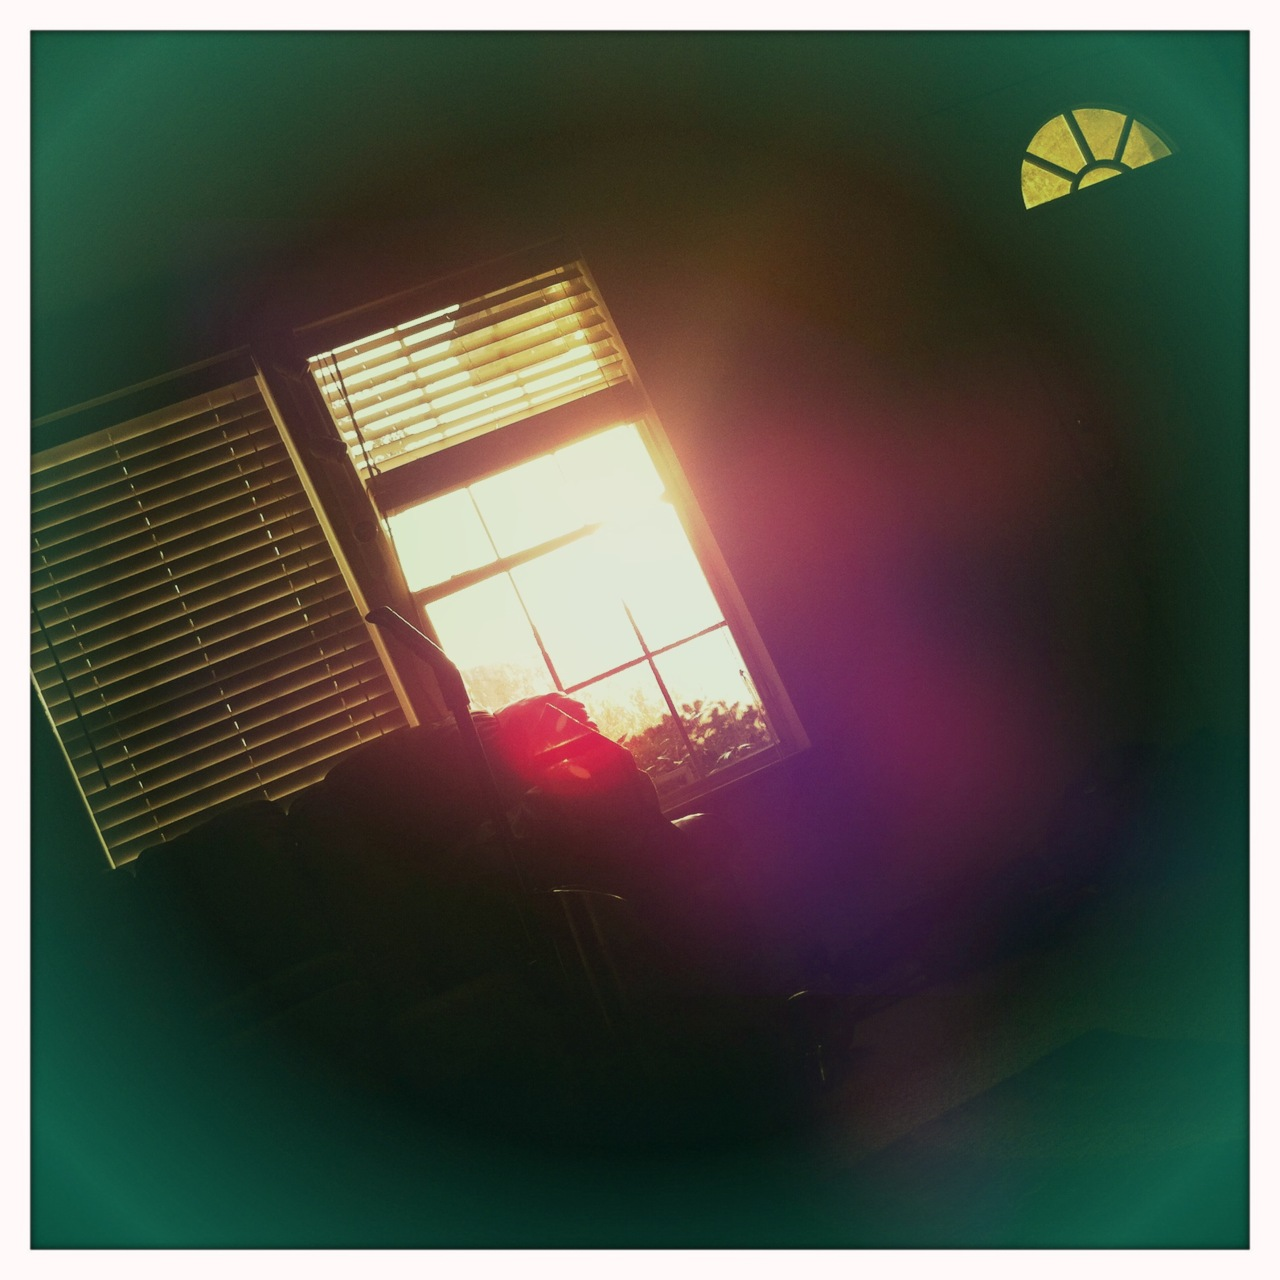 Sun coming through the window 8 Jimmy Lens, Blanko Film, Dreampop Flash,